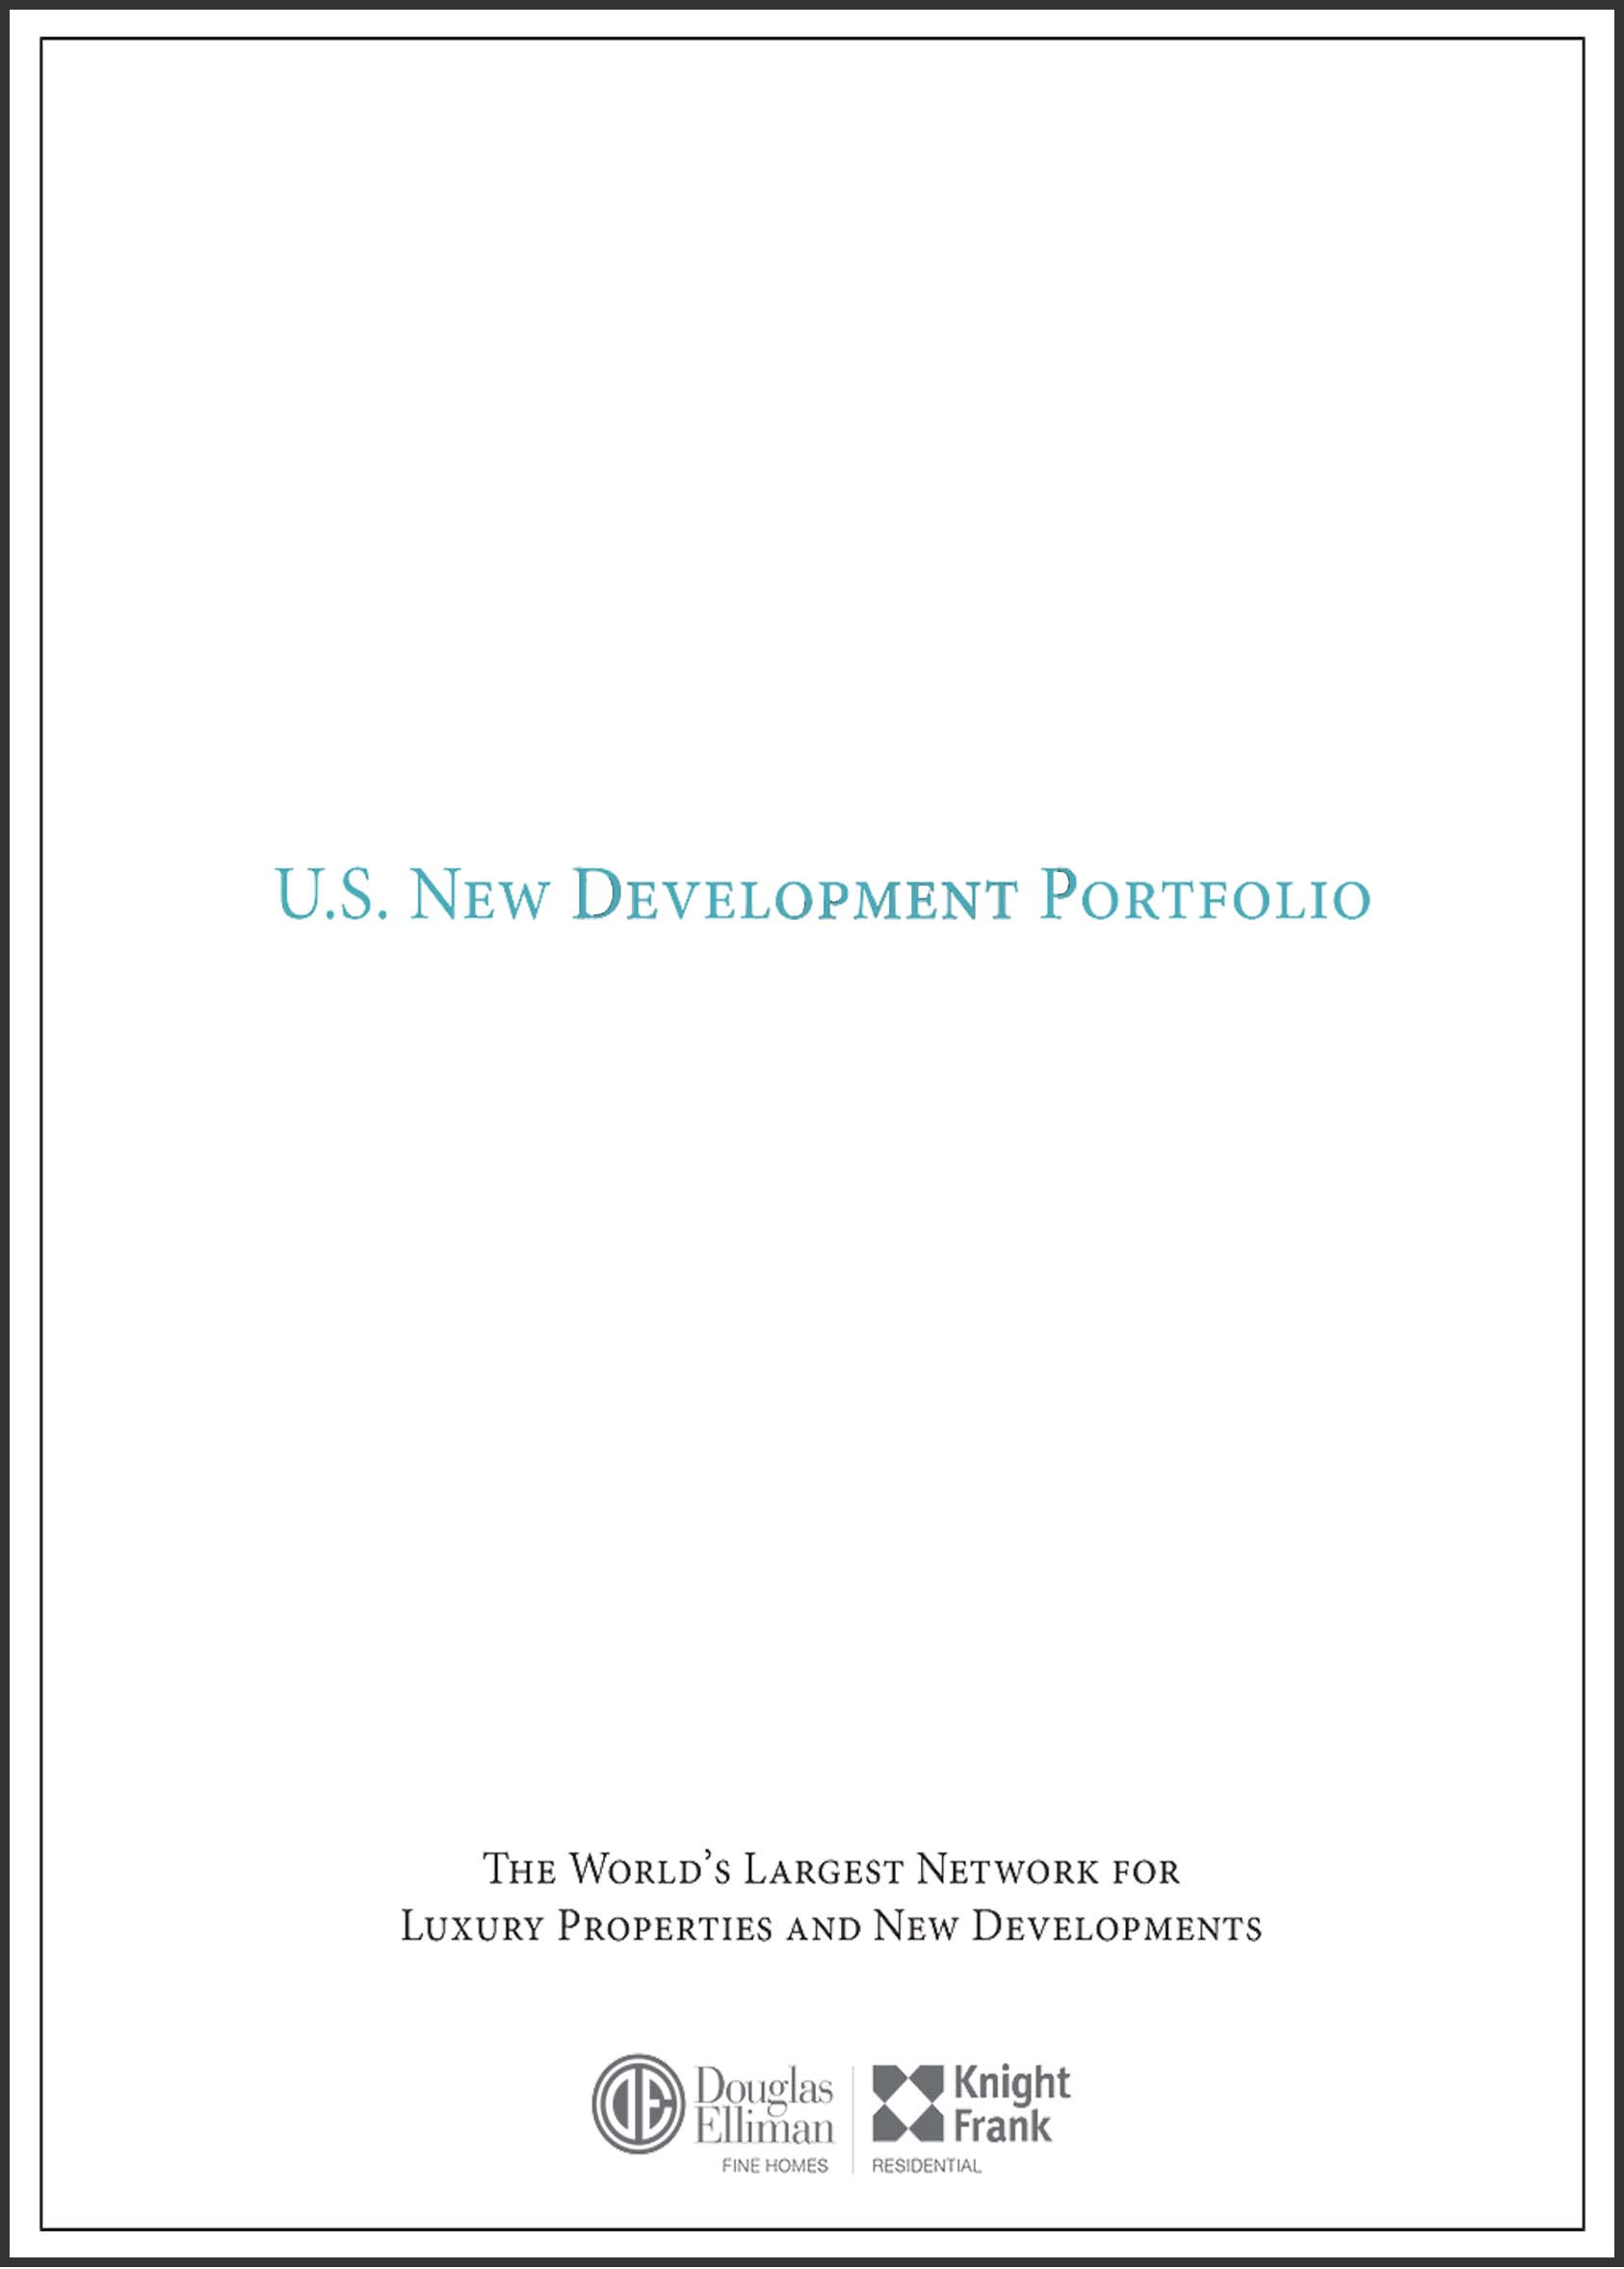 U.S. New Development Portfolio